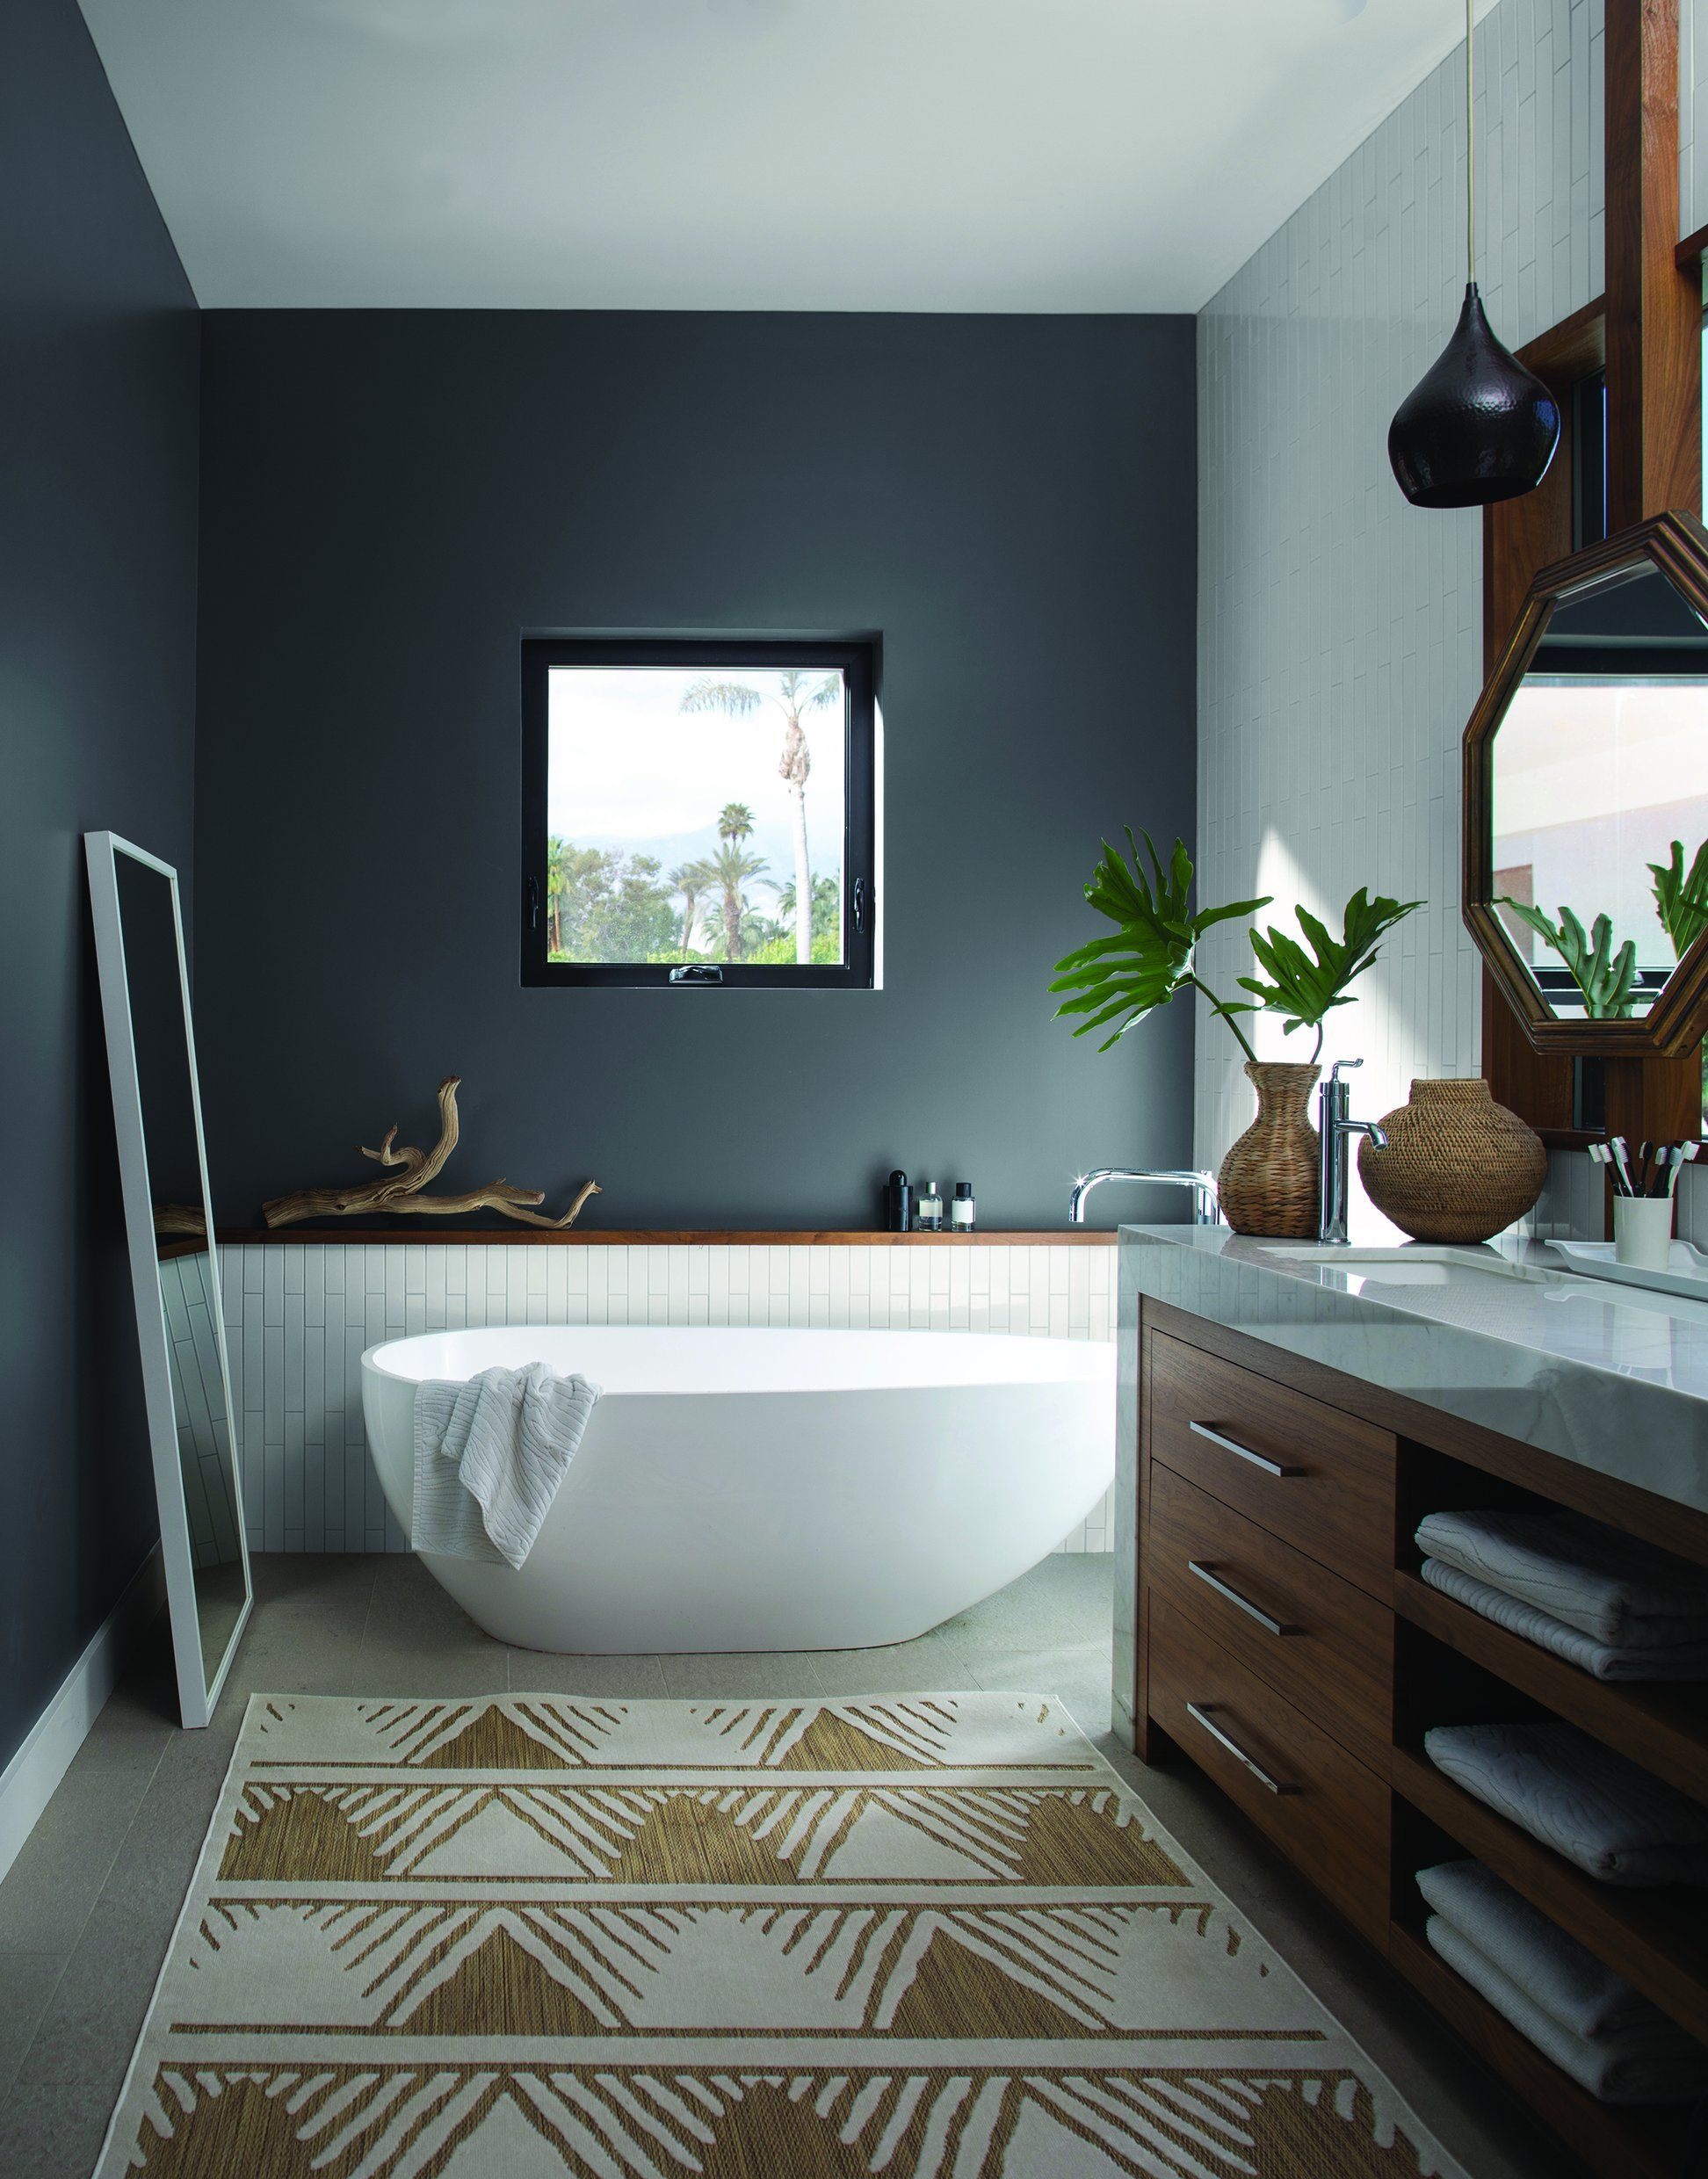 Catalina Paints Perfectly Balanced Bathroom In 2020 Best Bathroom Paint Colors Tranquil Bathroom Bathroom Colors